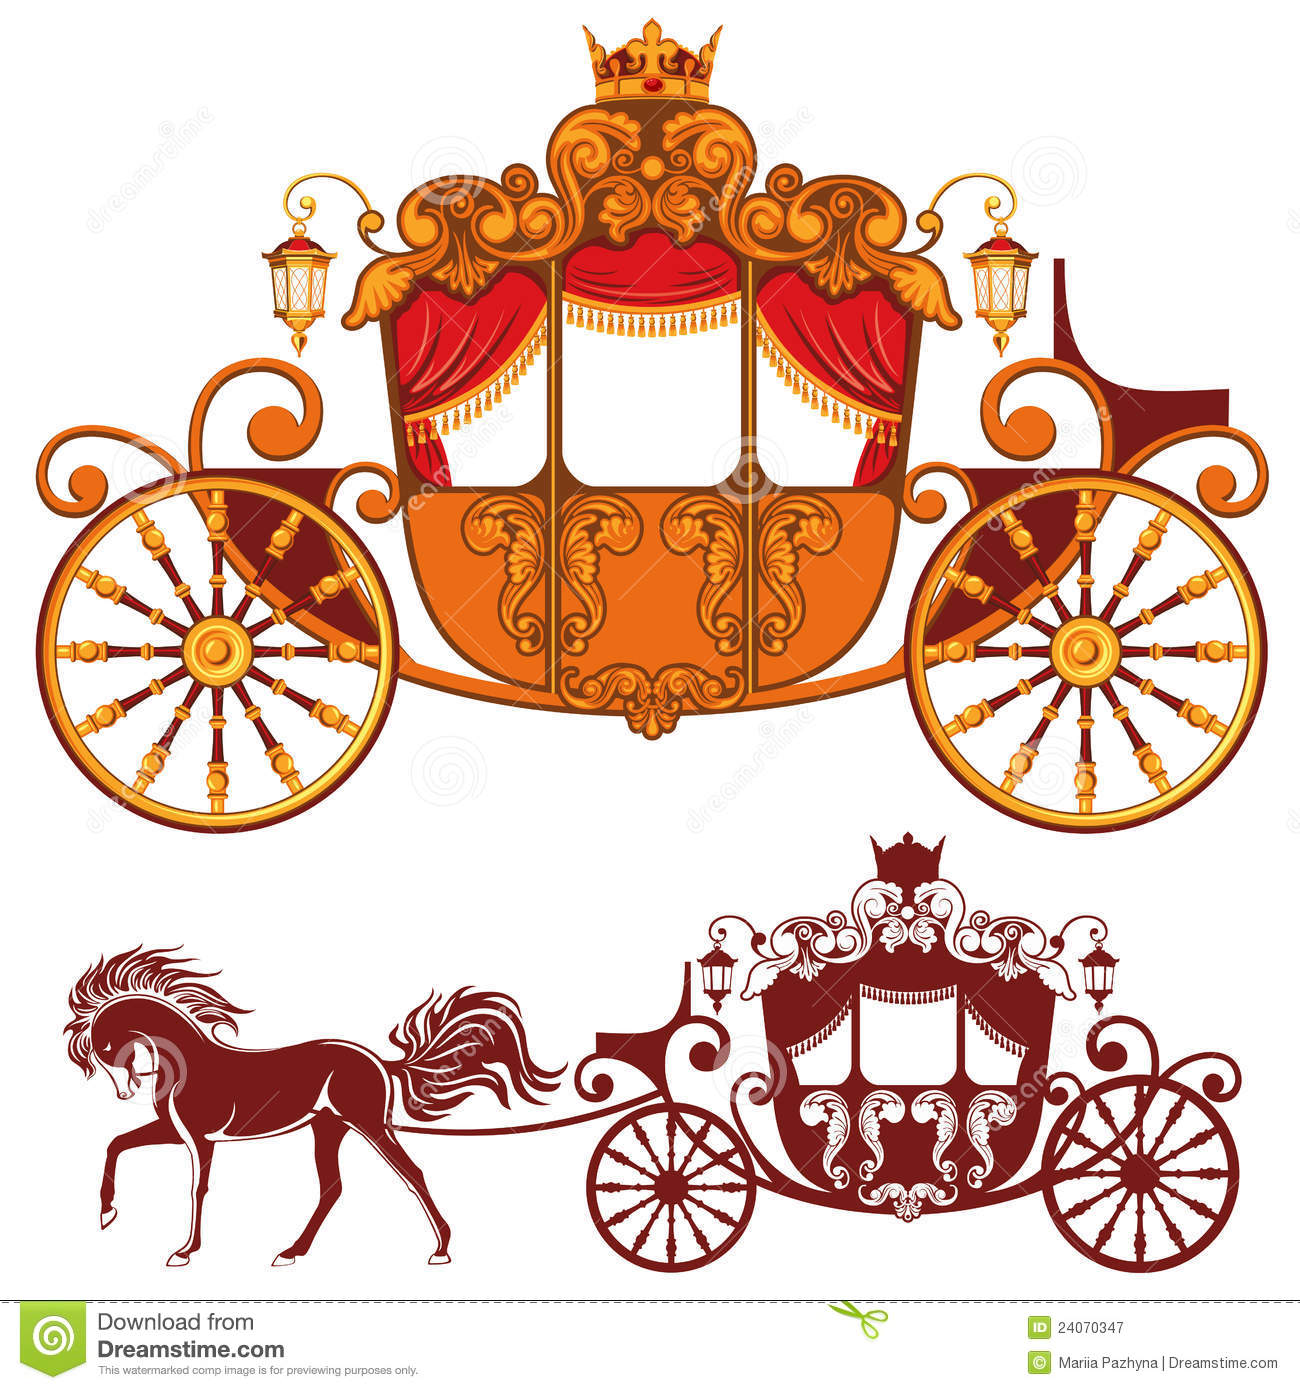 Royal Carriage Royalty Free Stock Photography   Image  24070347